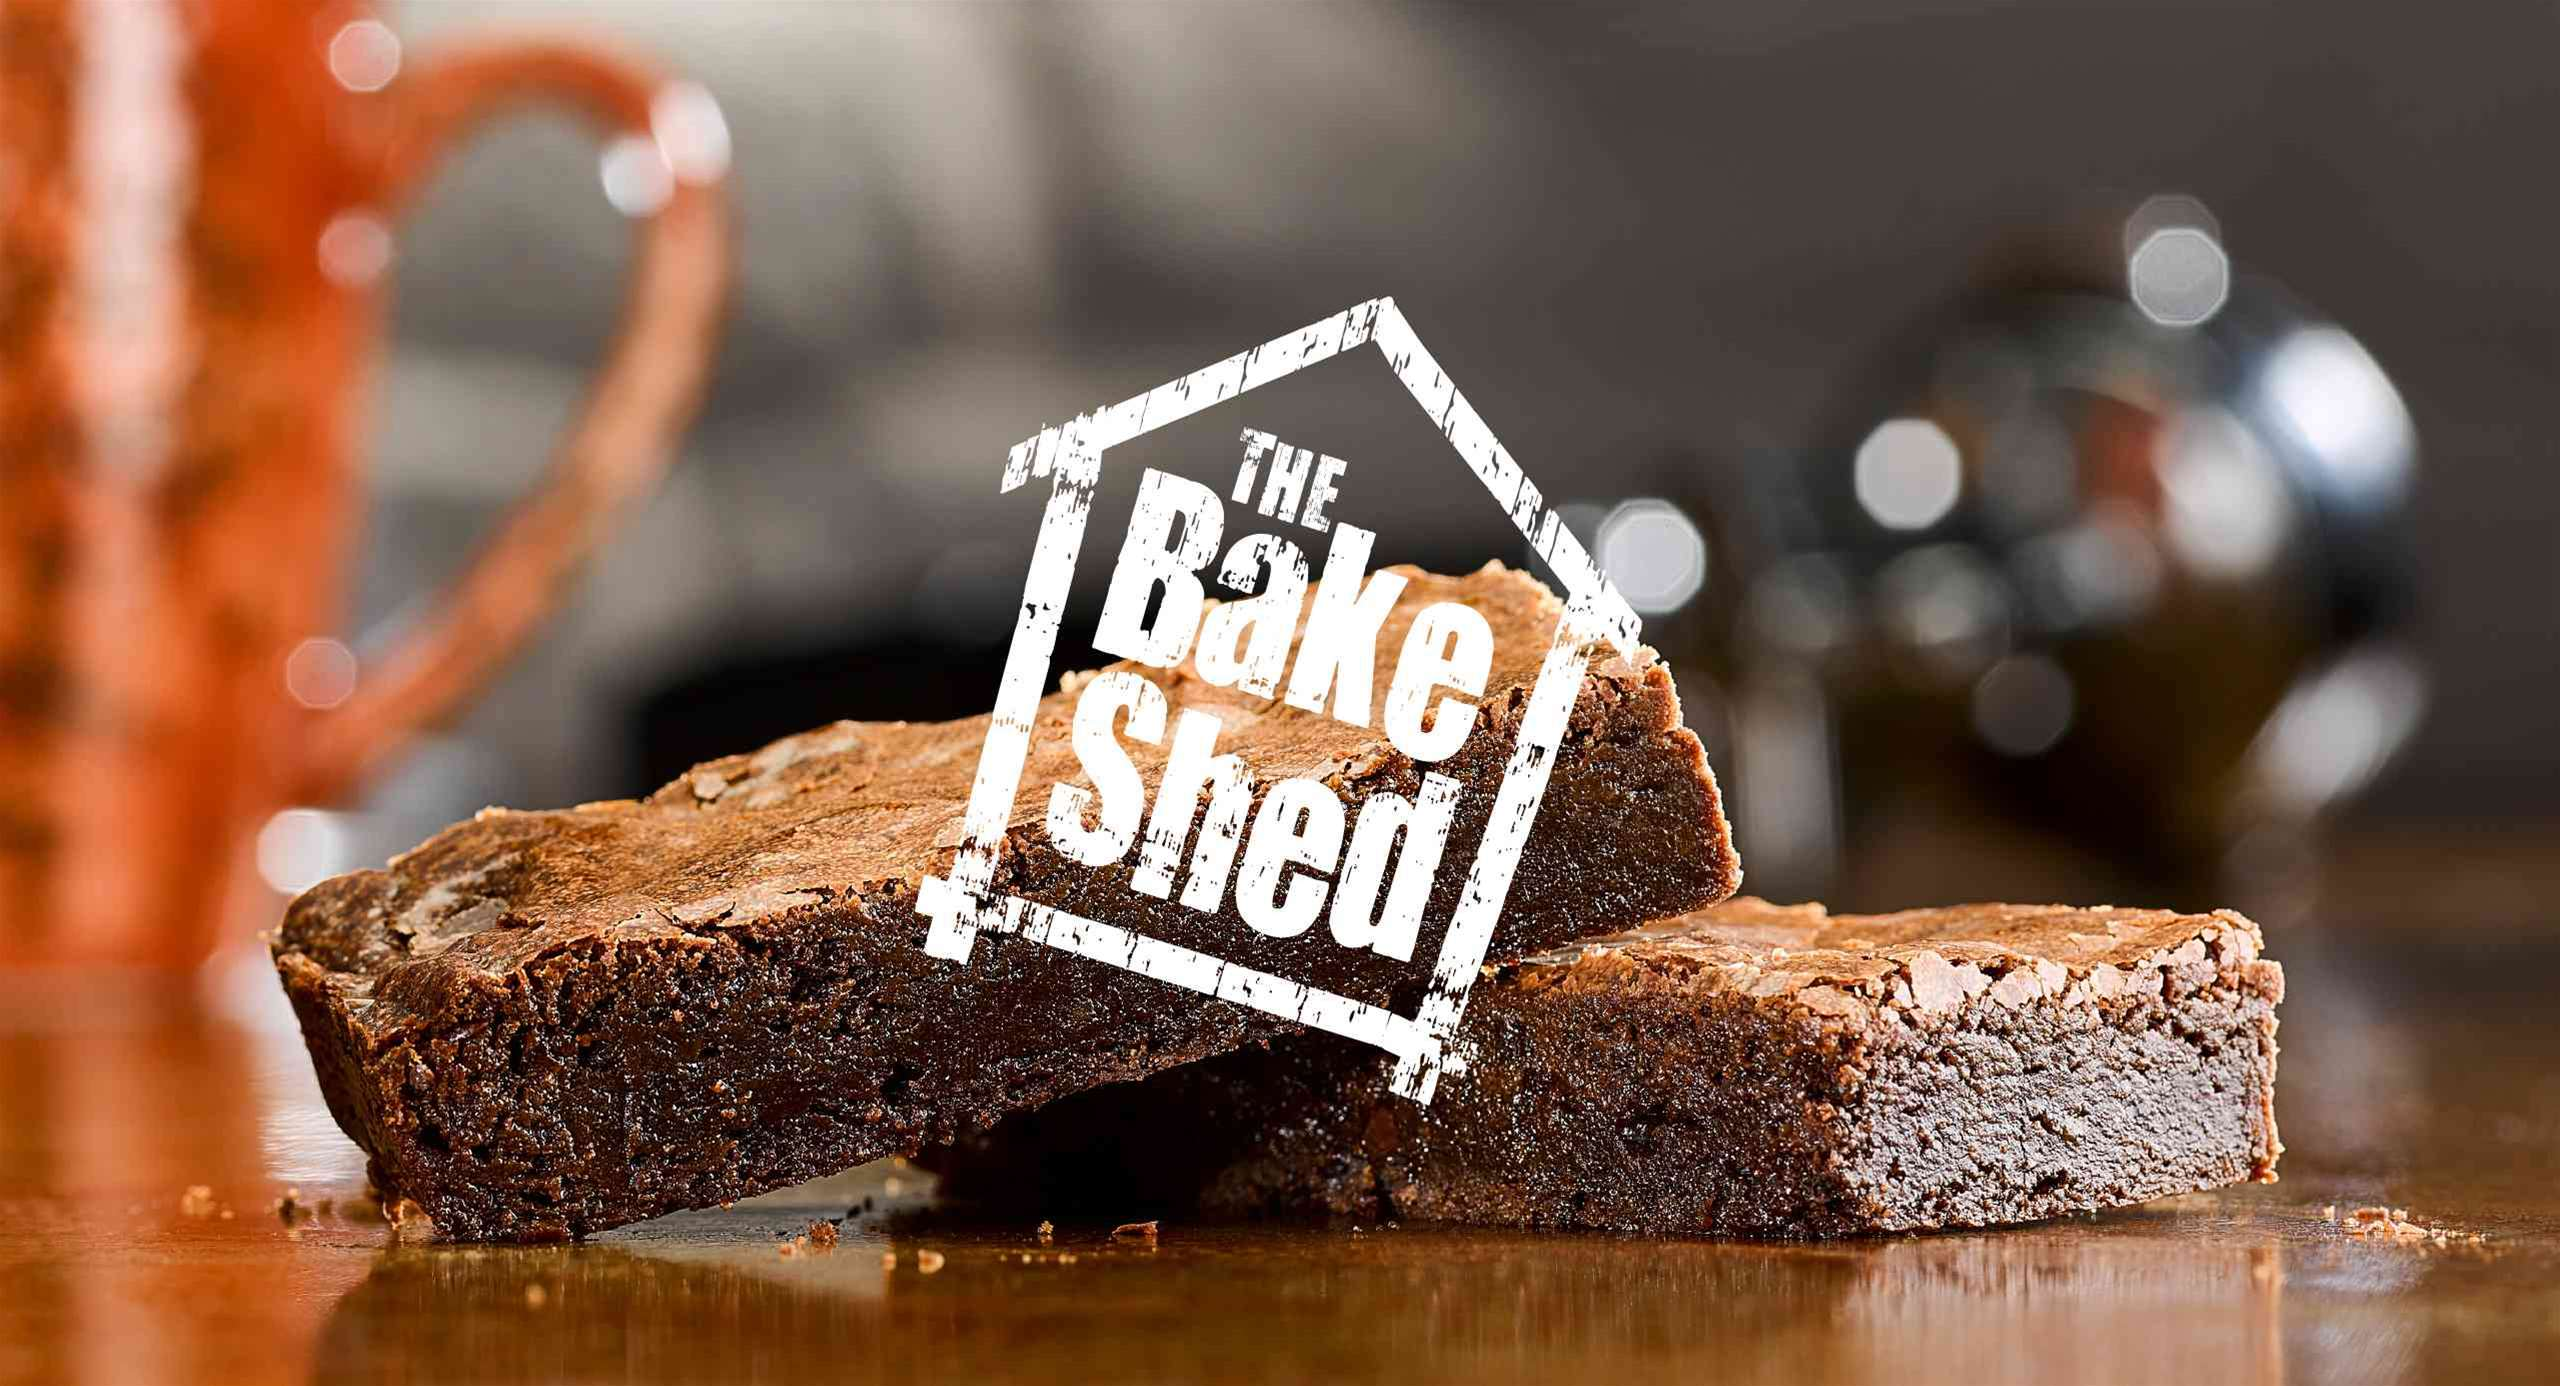 The Bake Shed: Making a name for the business